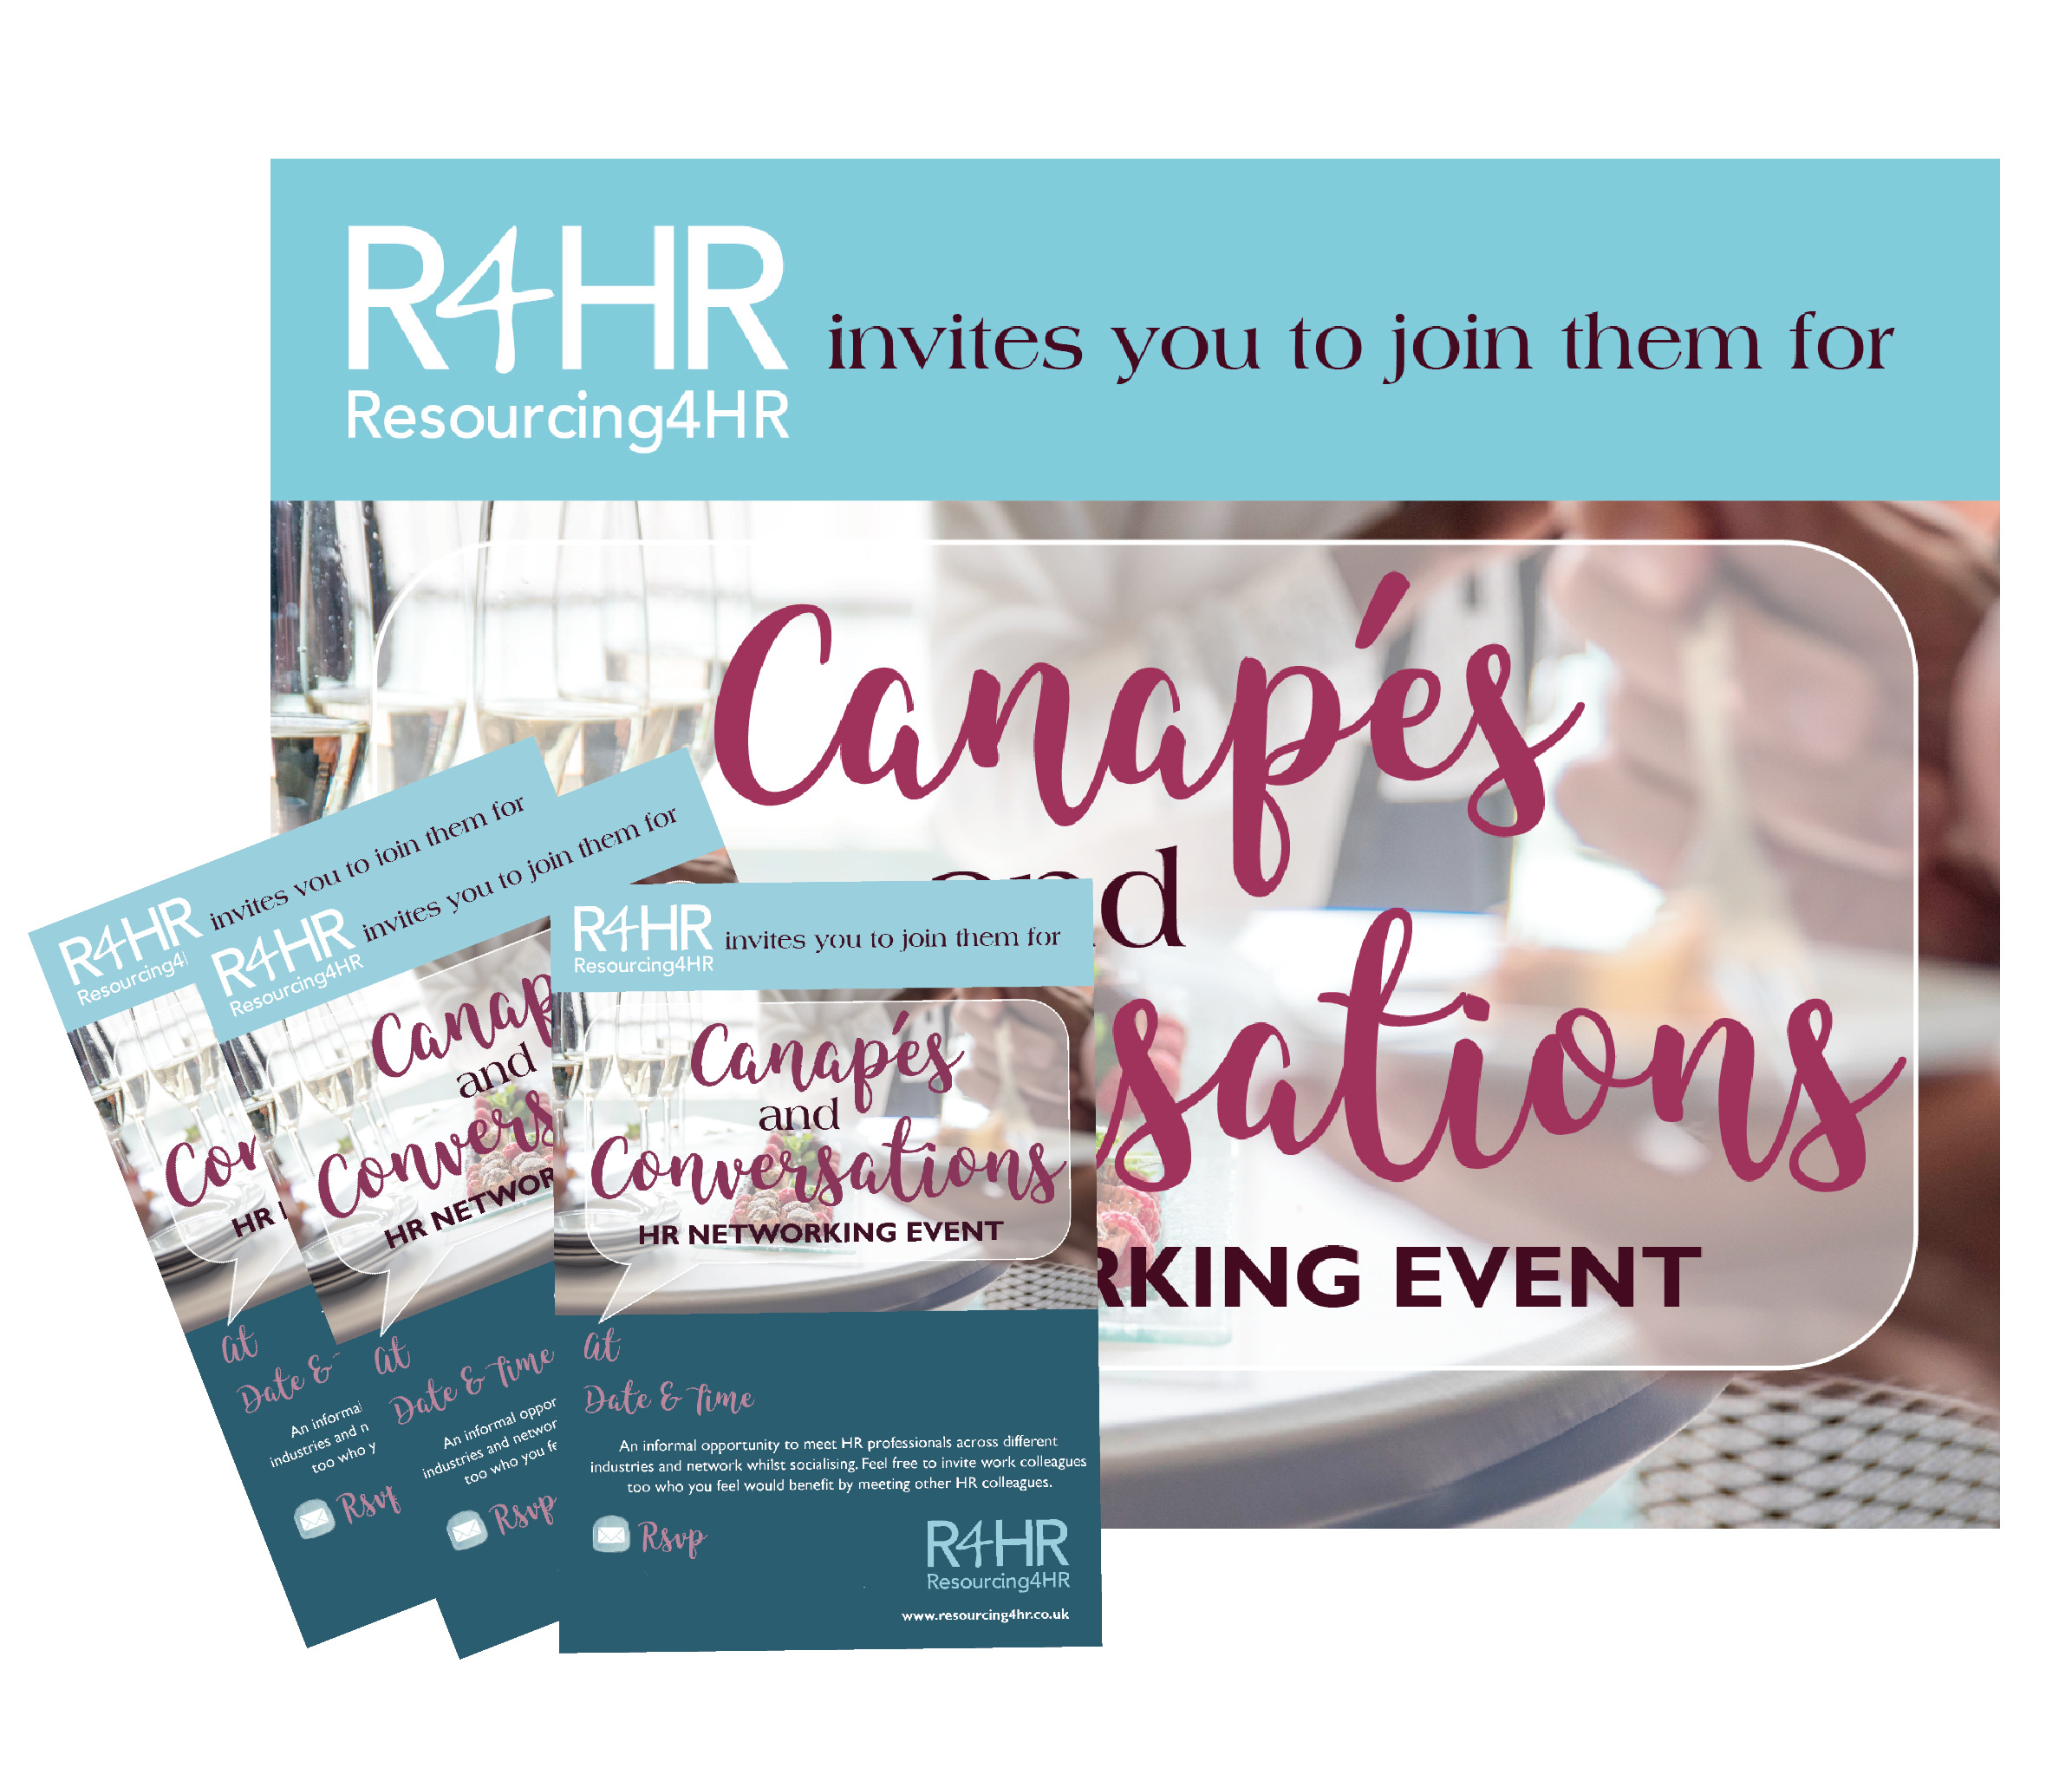 R4HR Networking Invitation